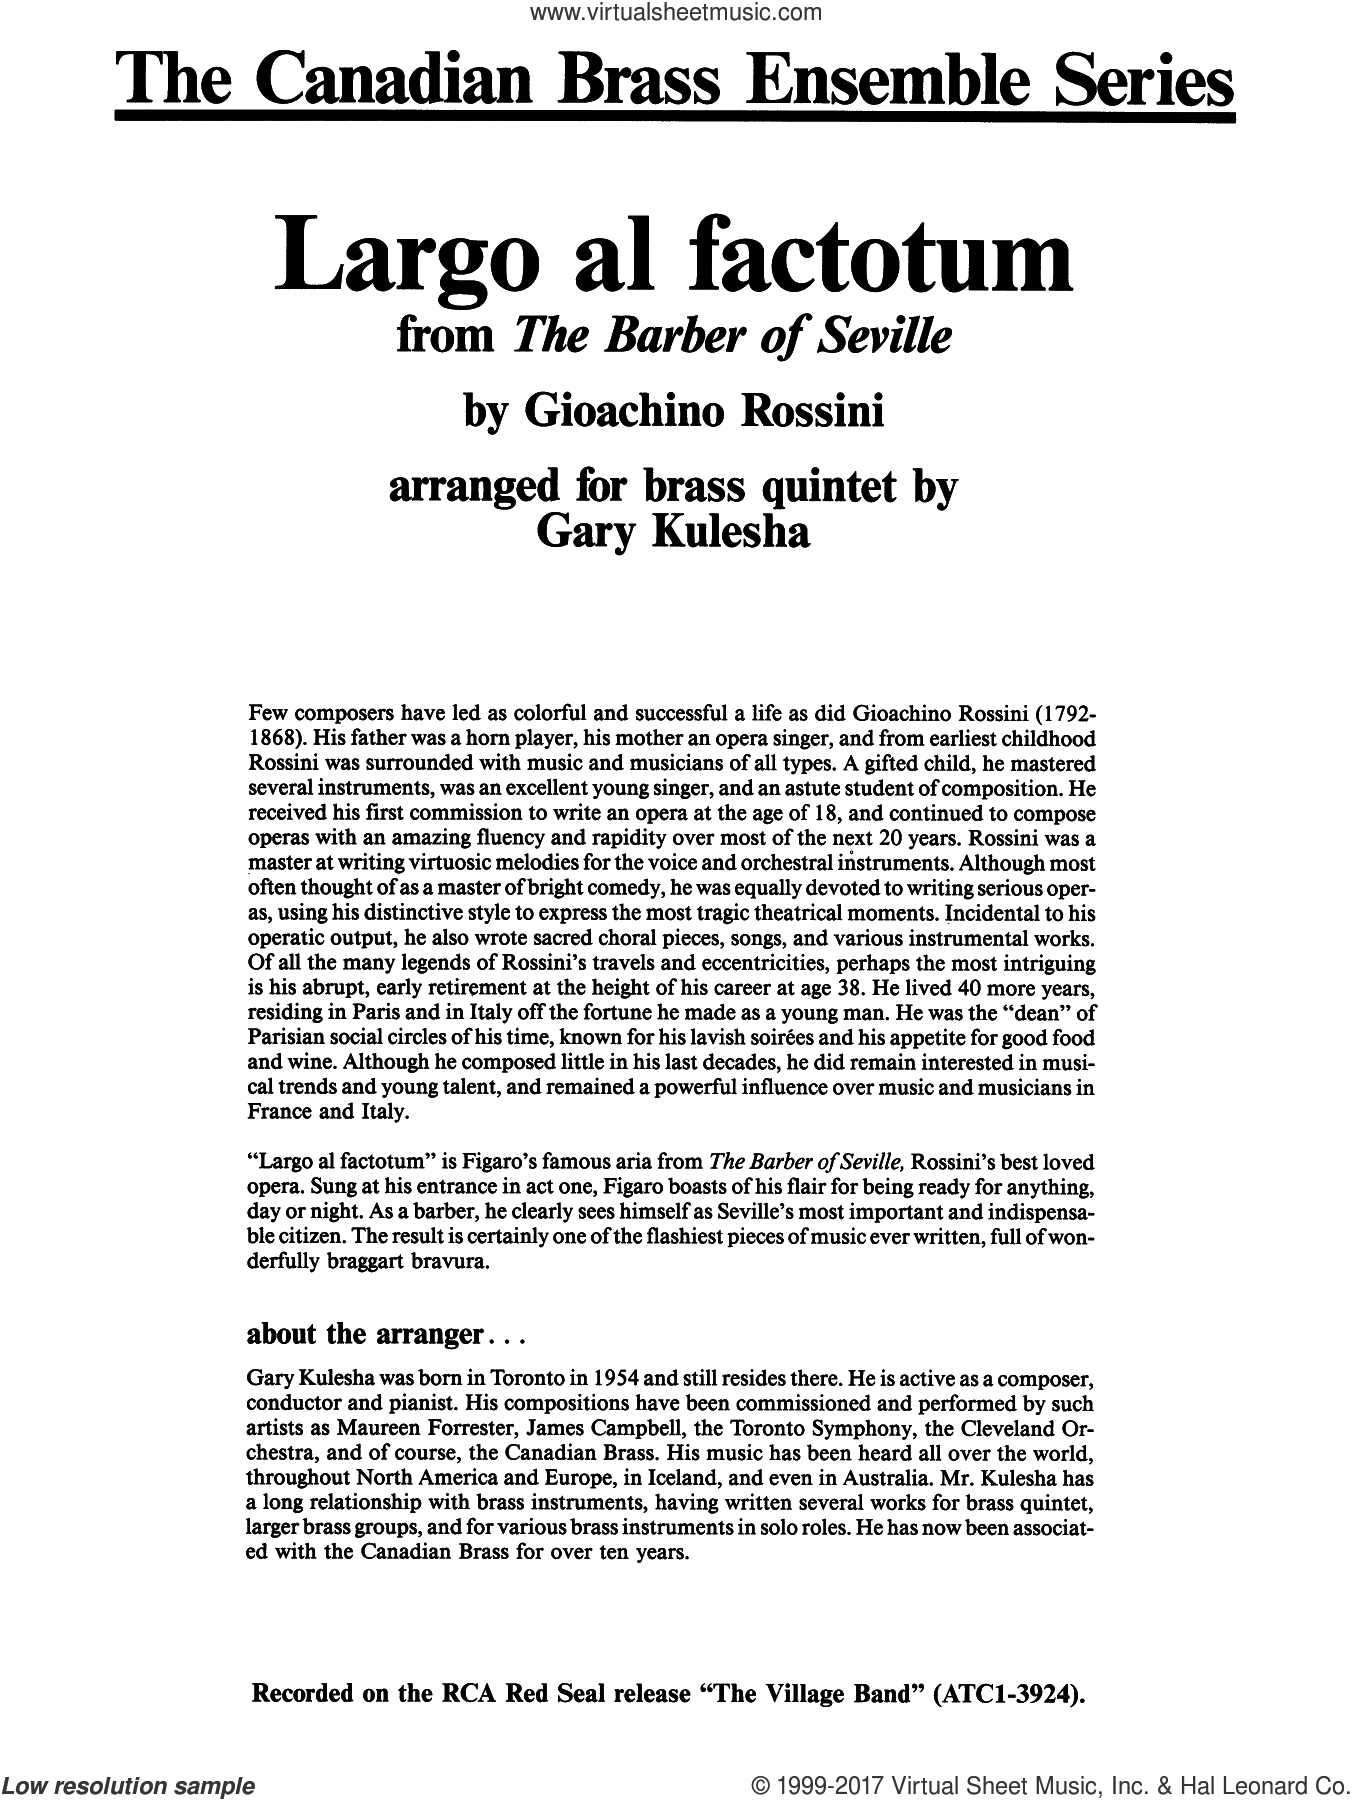 Largo al factotum from The Barber of Seville (COMPLETE) sheet music for brass quintet by Gioacchino Rossini and Gary Kulesha, classical score, intermediate skill level